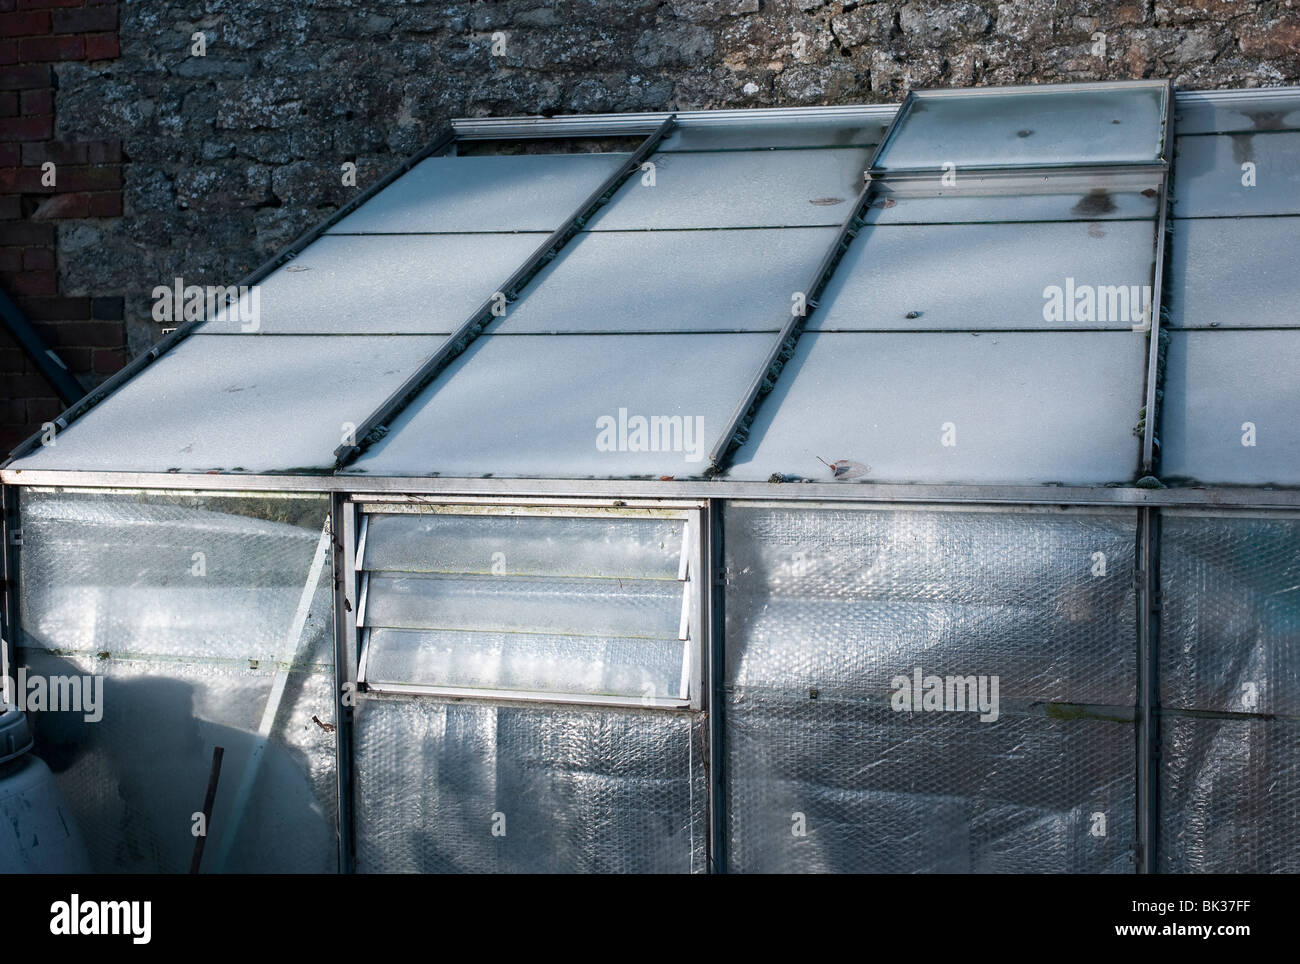 Greenhouse With Inner Walls Lined With Bubble Wrap For Insulation Against  Cold In Winter